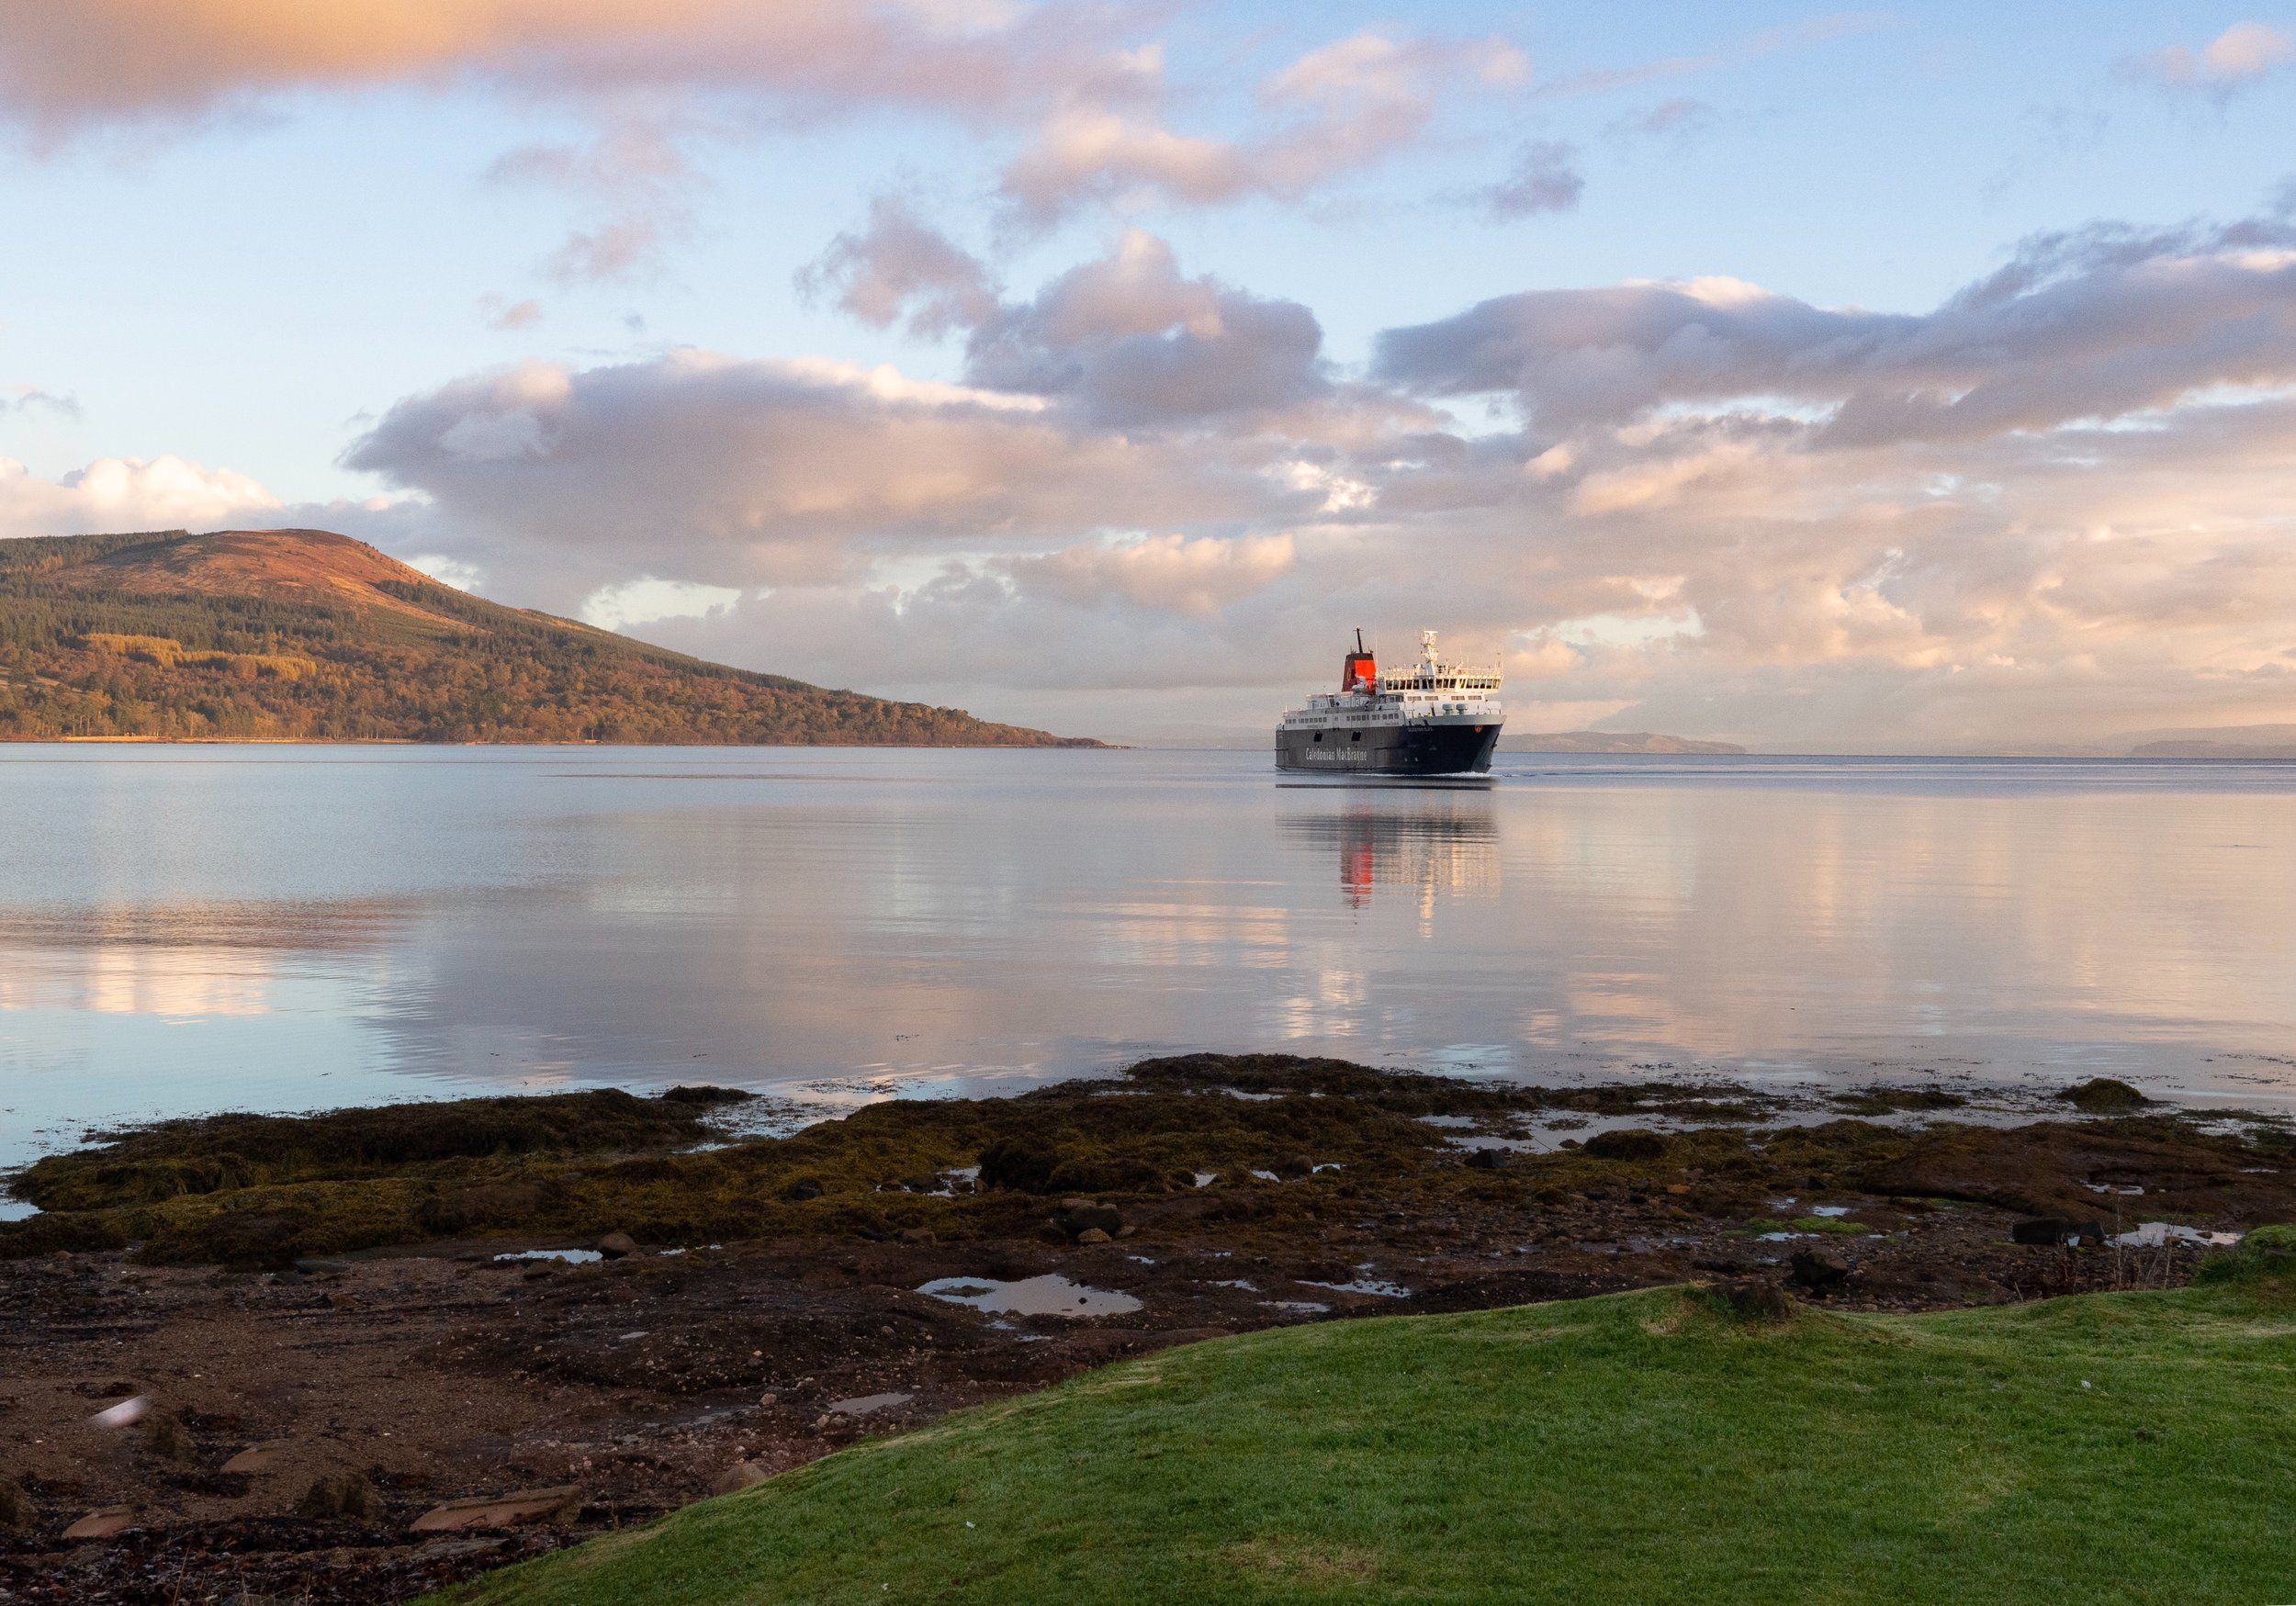 CalMac's morning ferry coming into Brodick on the Isle of Arran, Scotland